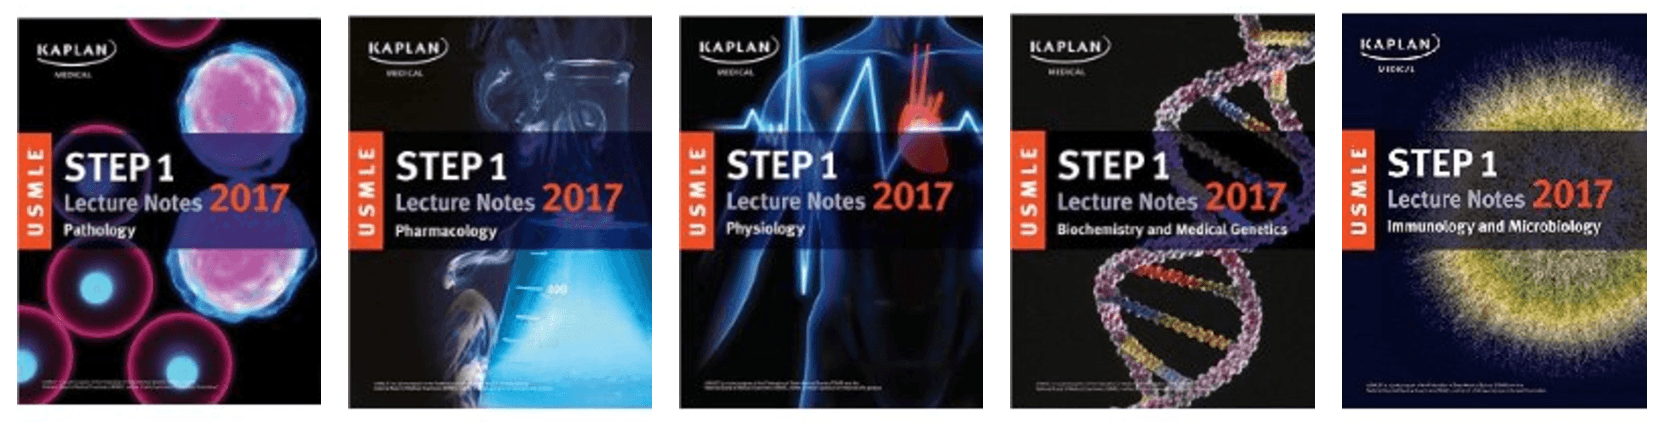 kaplan pas USMLE 1 lecture notes